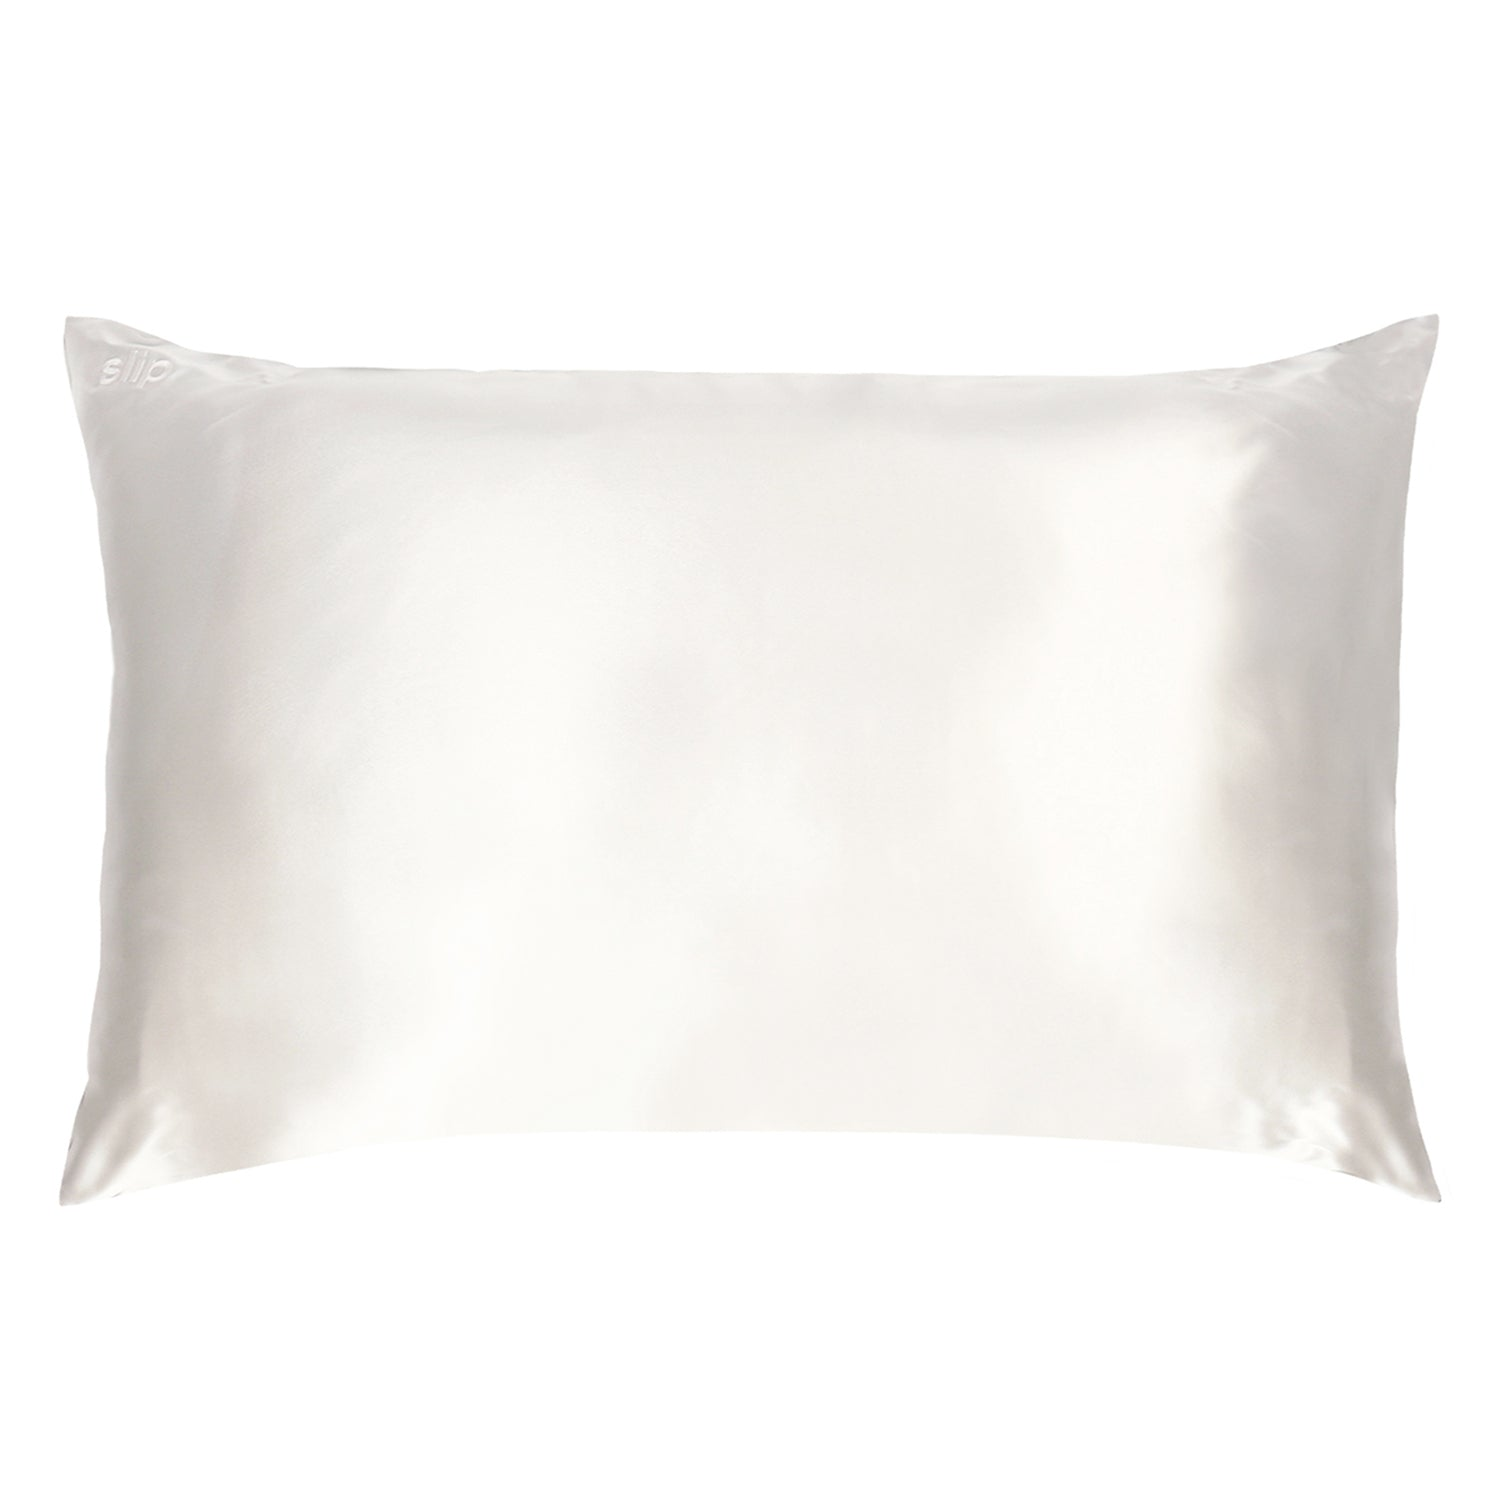 King Pillowcases